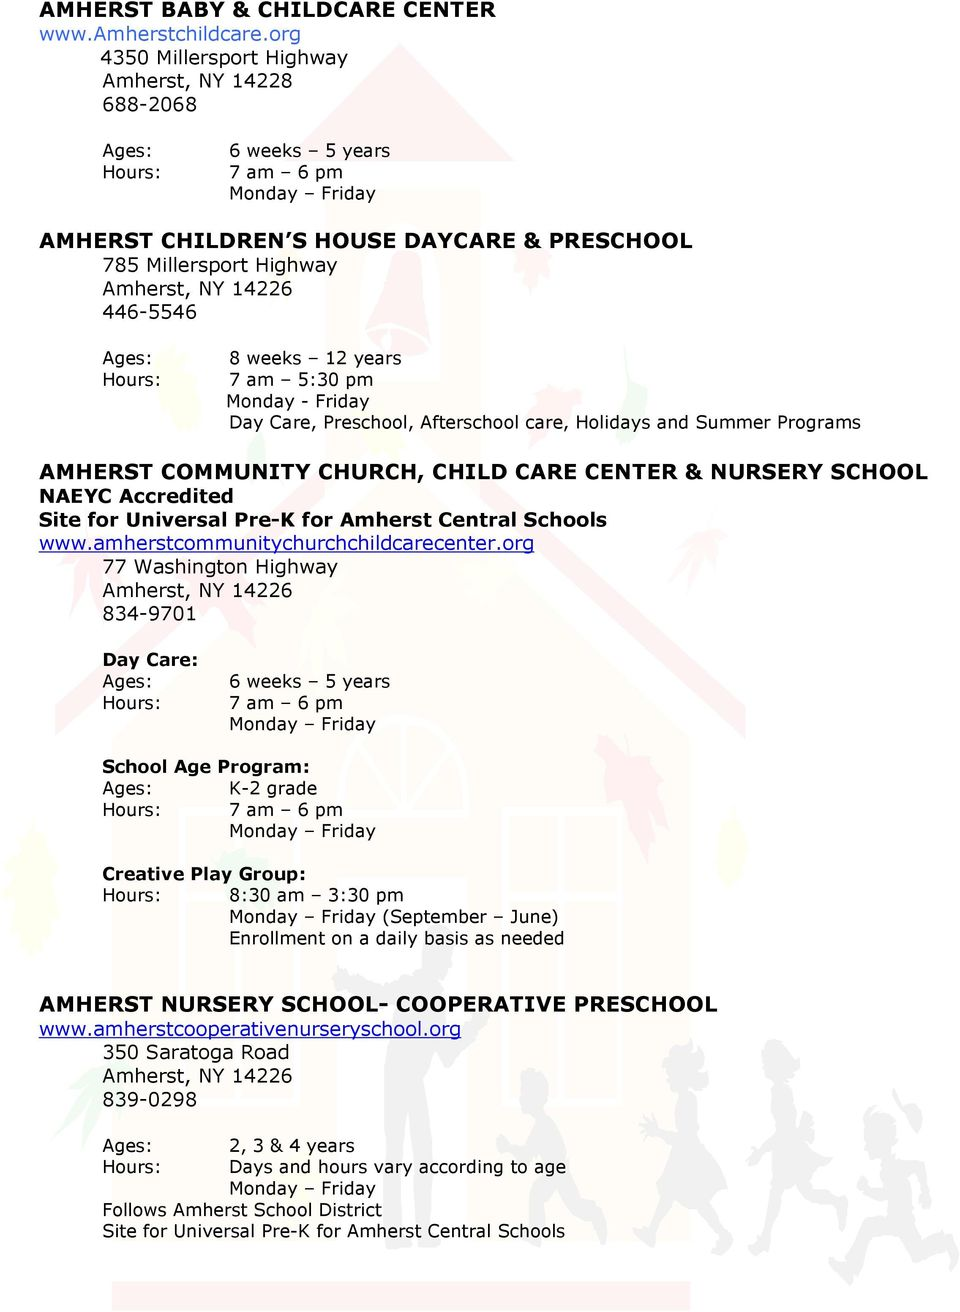 Friday Day Care Preschool Afterschool Holidays And Summer Programs Amherst Community Church